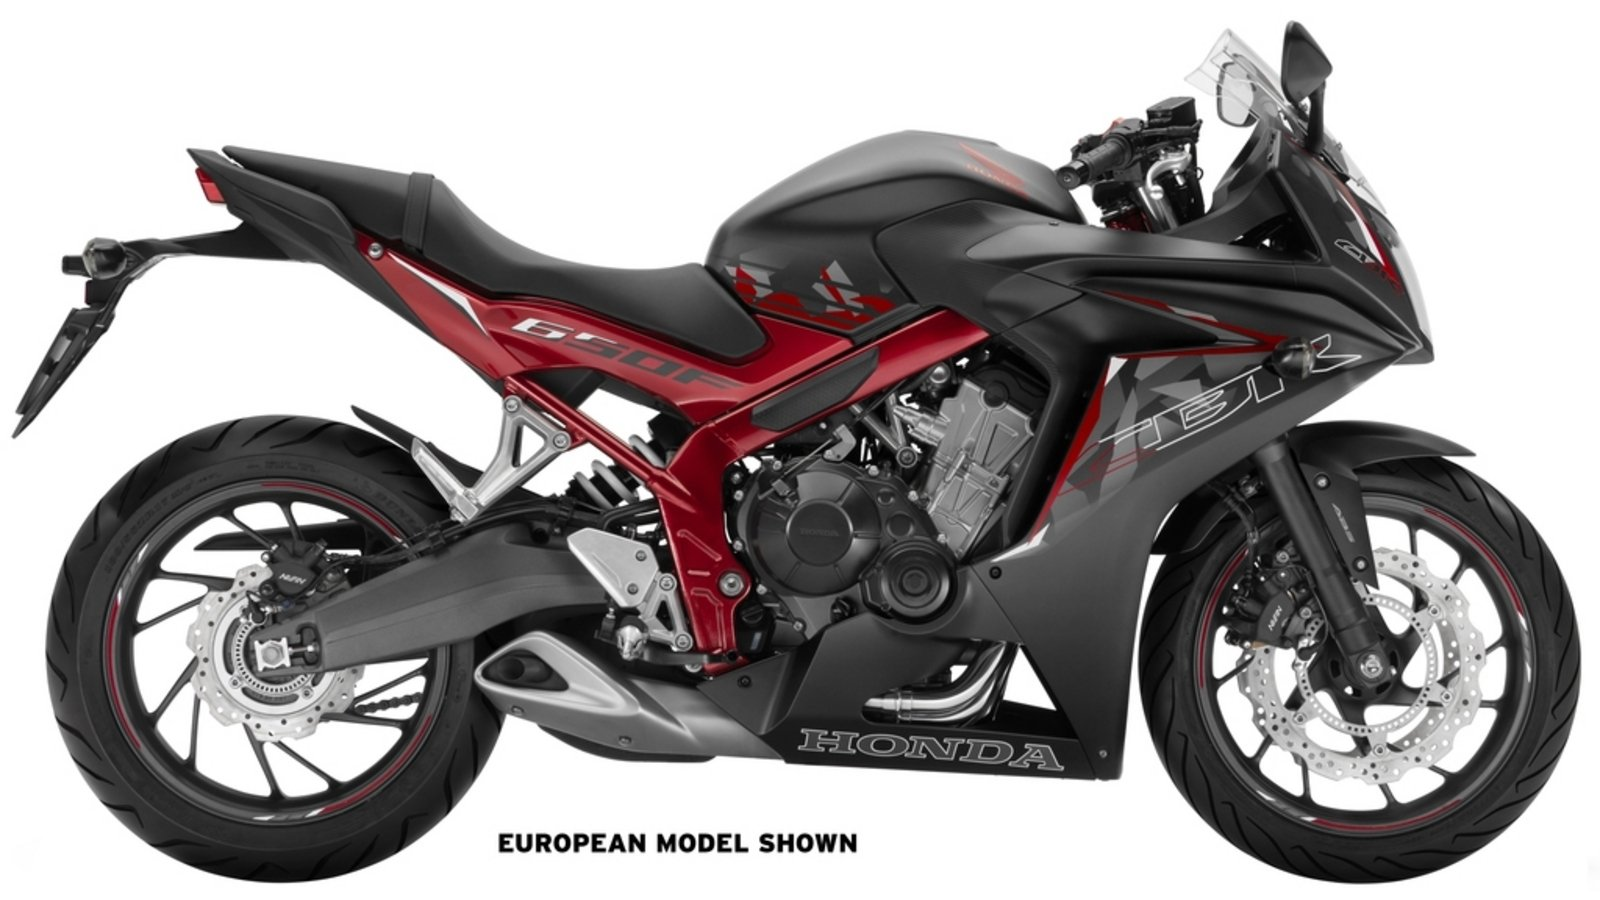 2015 2018 honda cbr650f review top speed. Black Bedroom Furniture Sets. Home Design Ideas